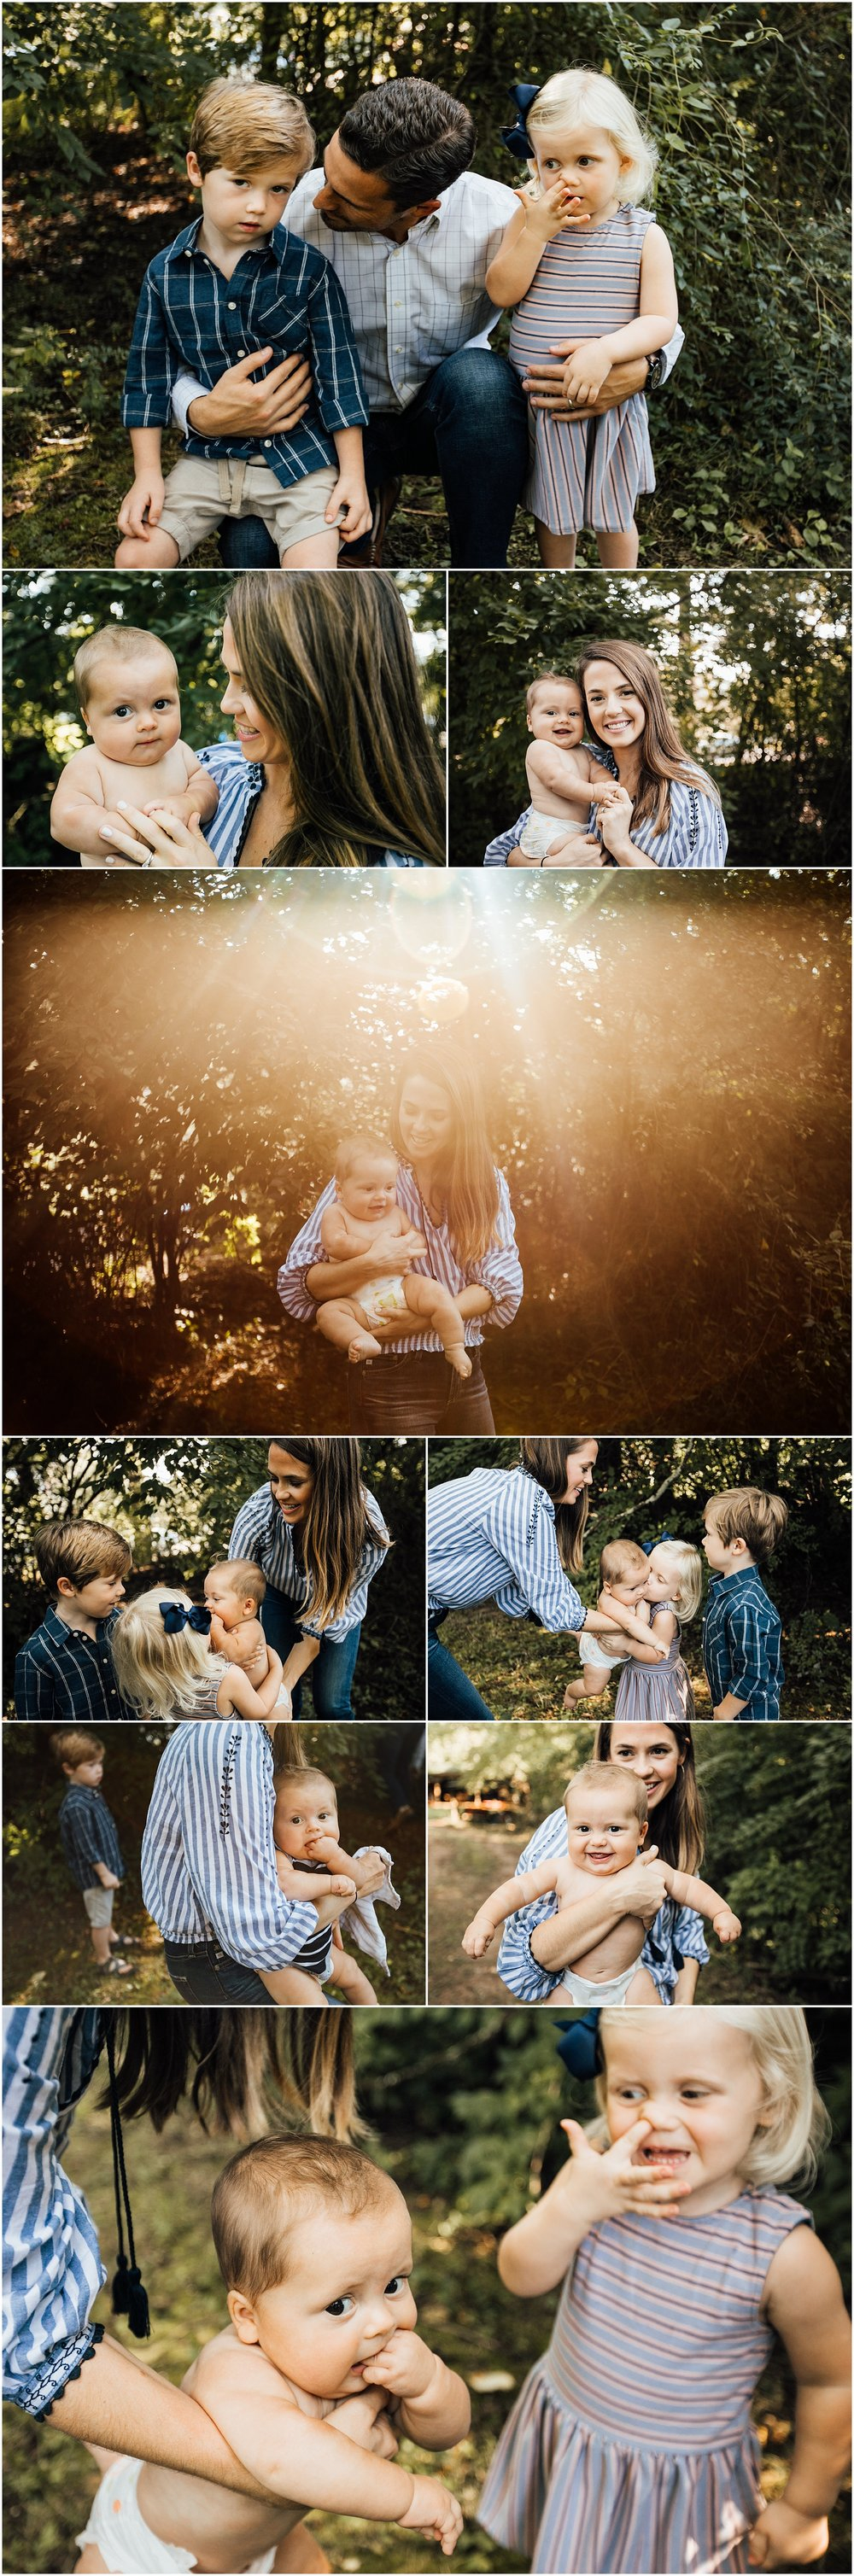 Madison Alabama family of 5 outdoor fall session by Rachel K Photo